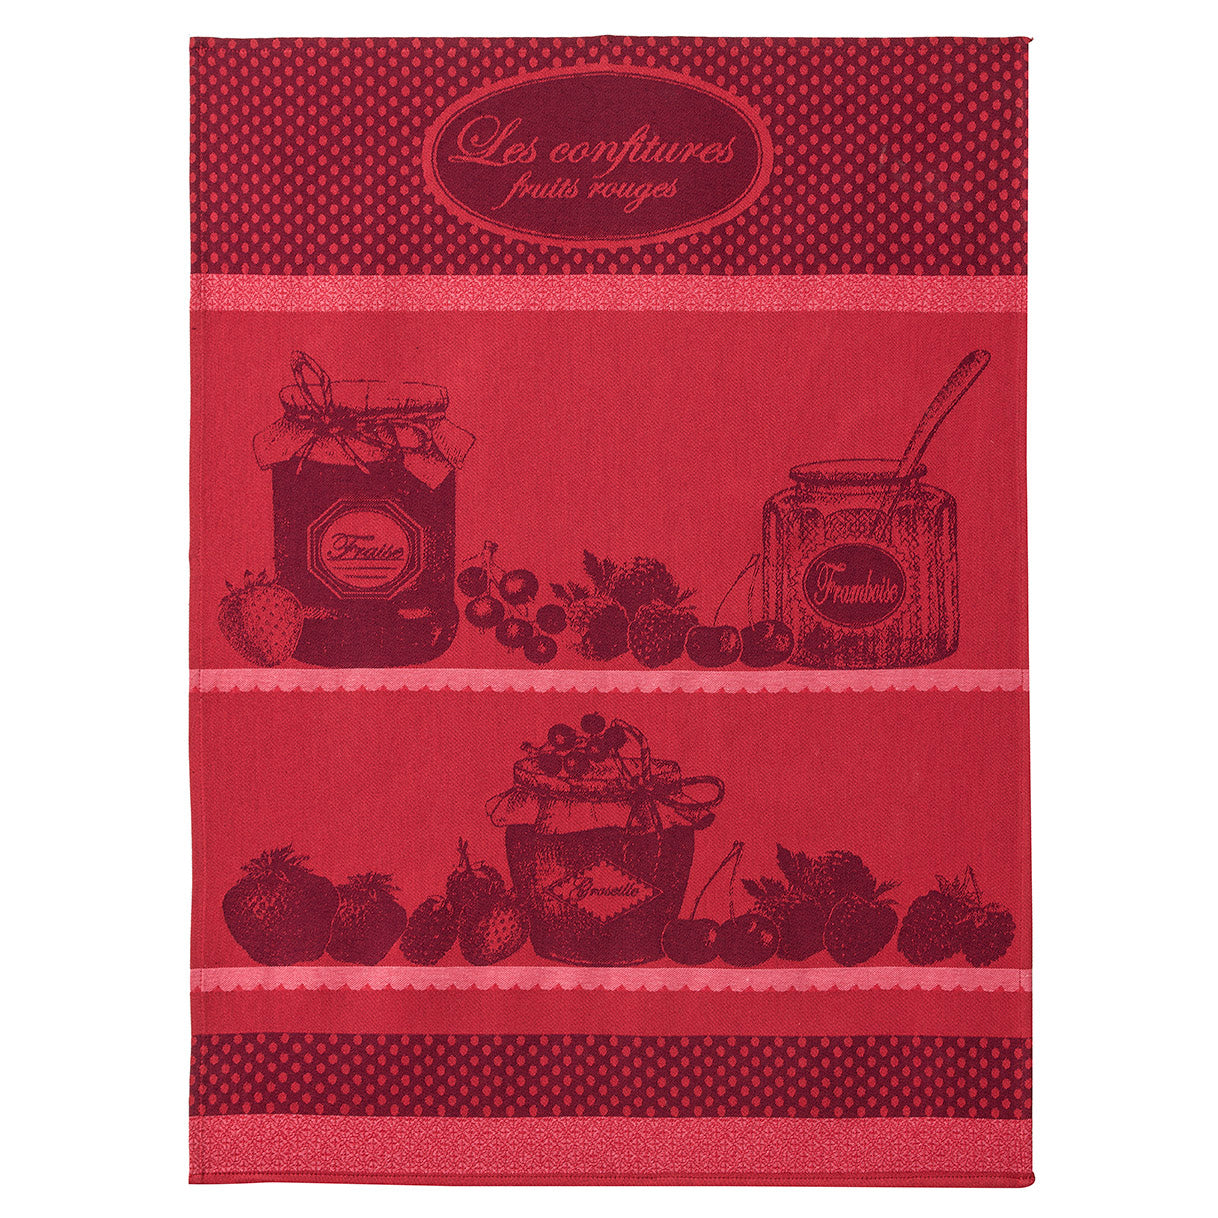 Coucke Confiture Fruits Rouge French Jacquard Dish Towel I Dream